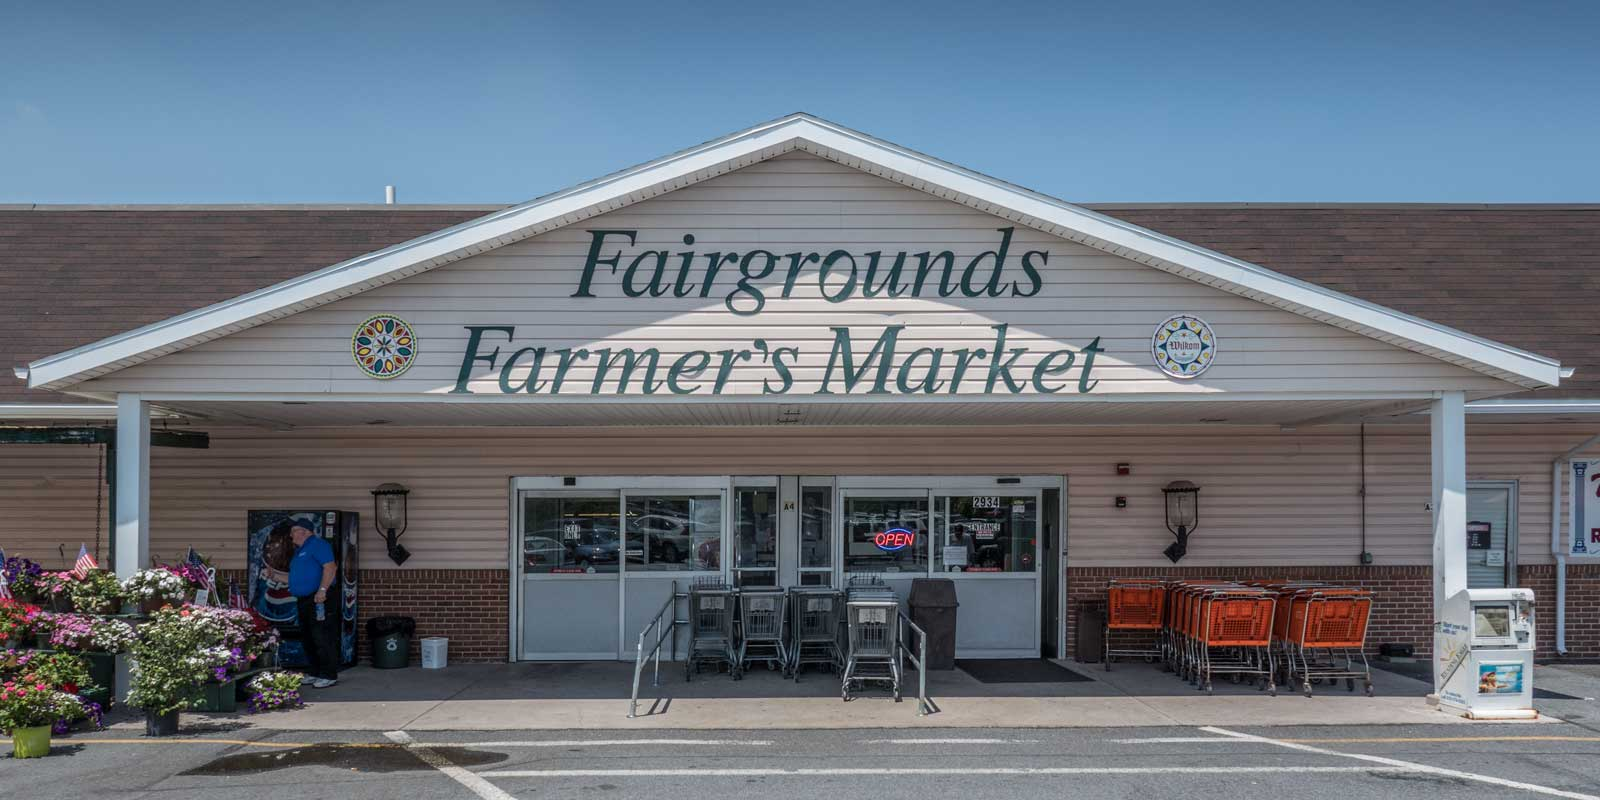 Fairgrounds Farmers Market Reading Pennsylvania